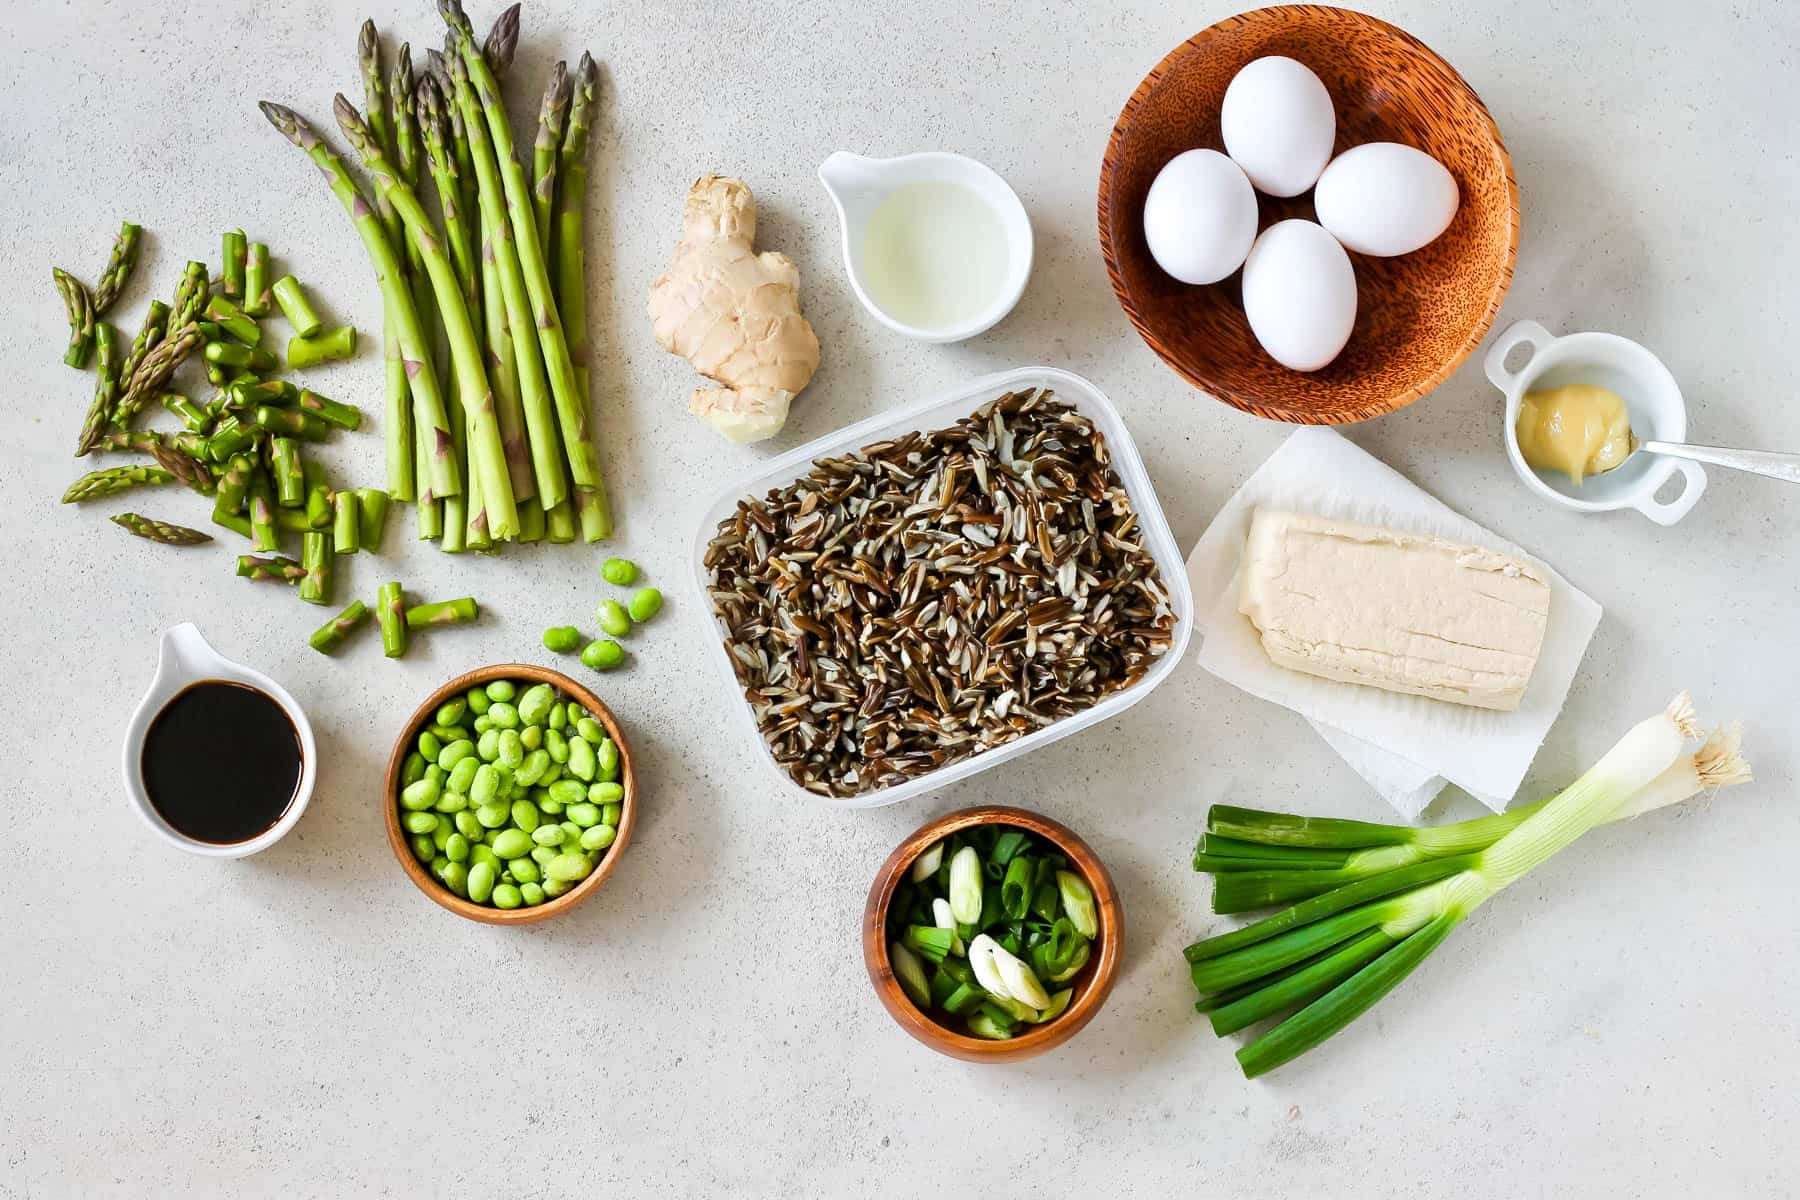 asparagus, wild rice, edamame, eggs, green onion, tofu, ginger, and honey on a grey background